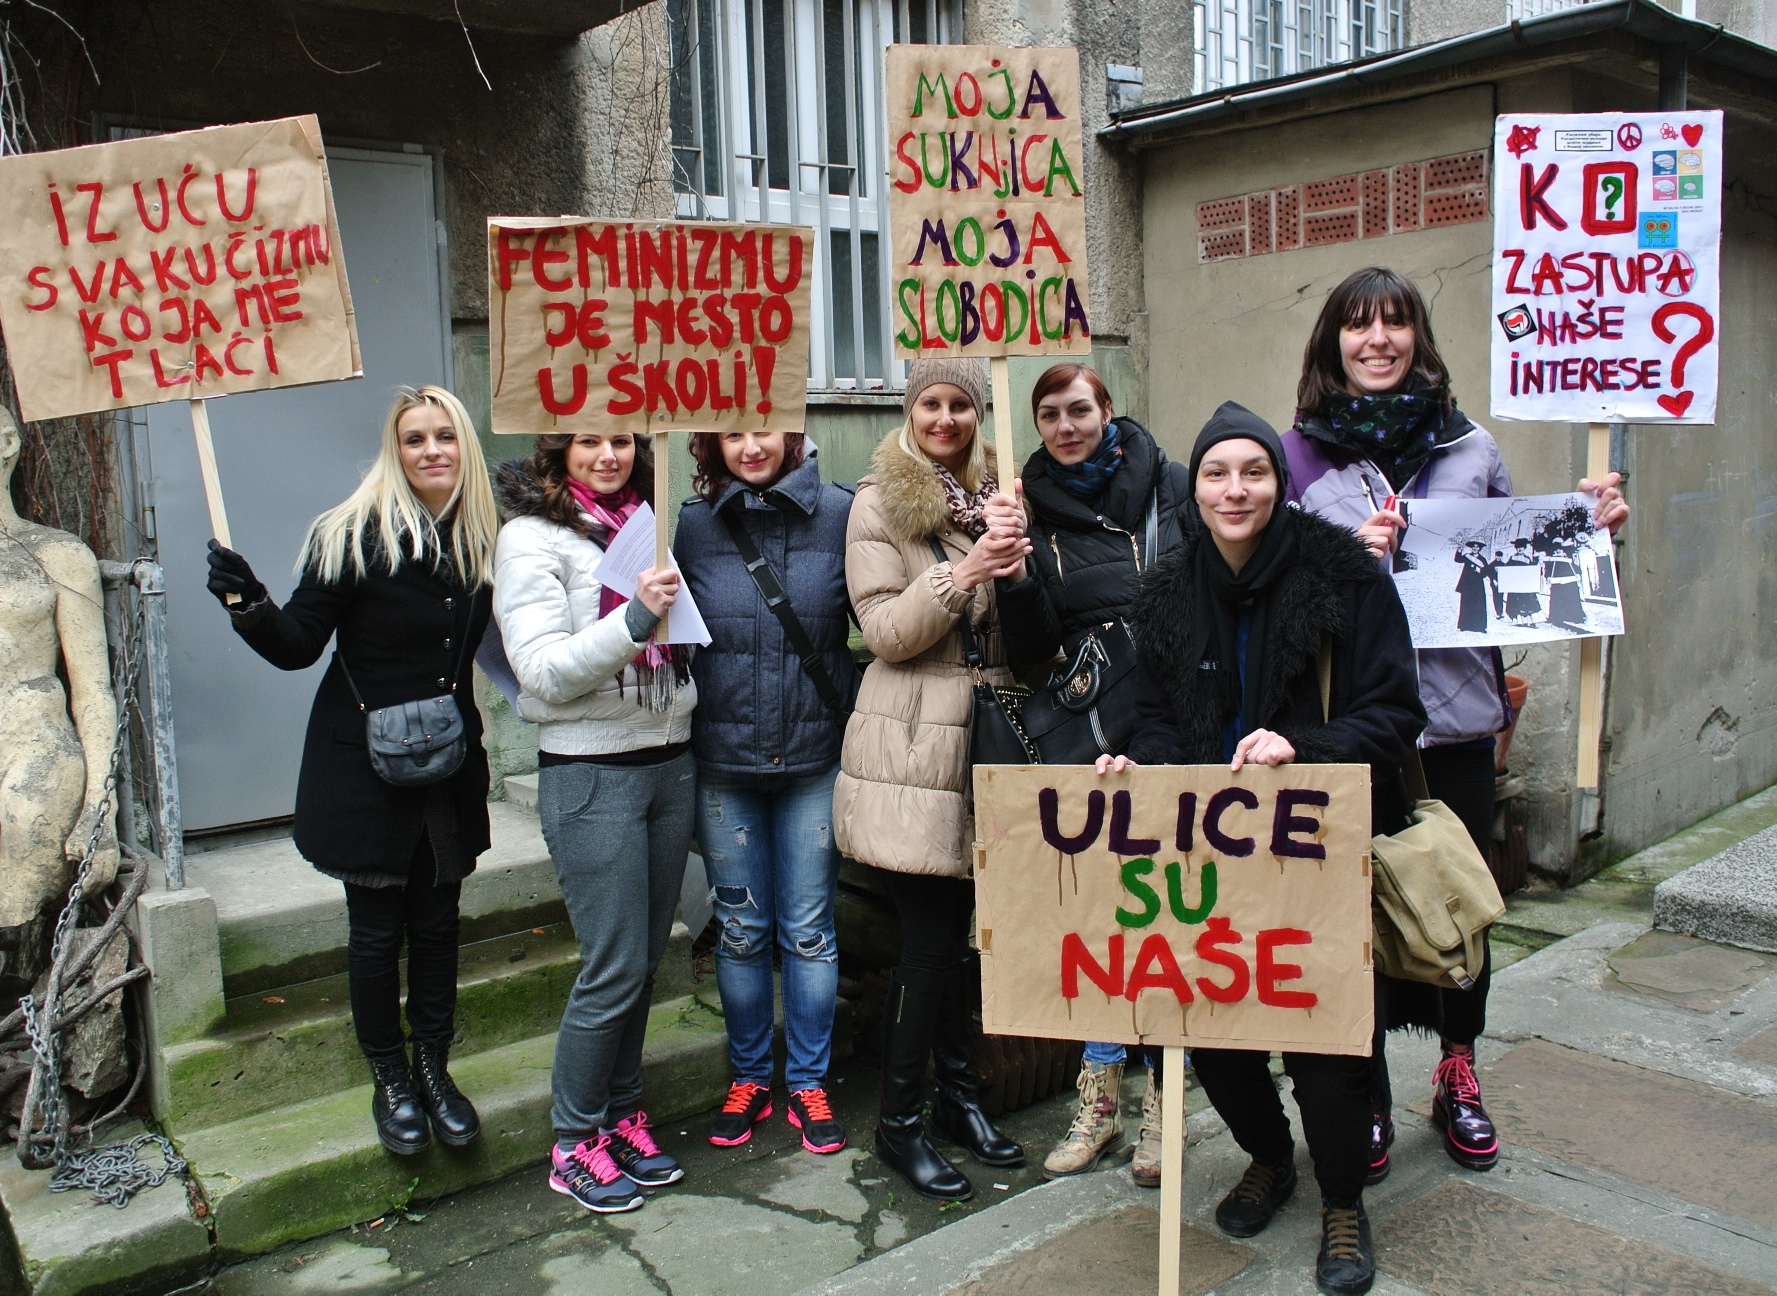 Women's activists ready for a demonstration on 8 March, International Women's Day. Photo: Women Against Violence Network, Serbia